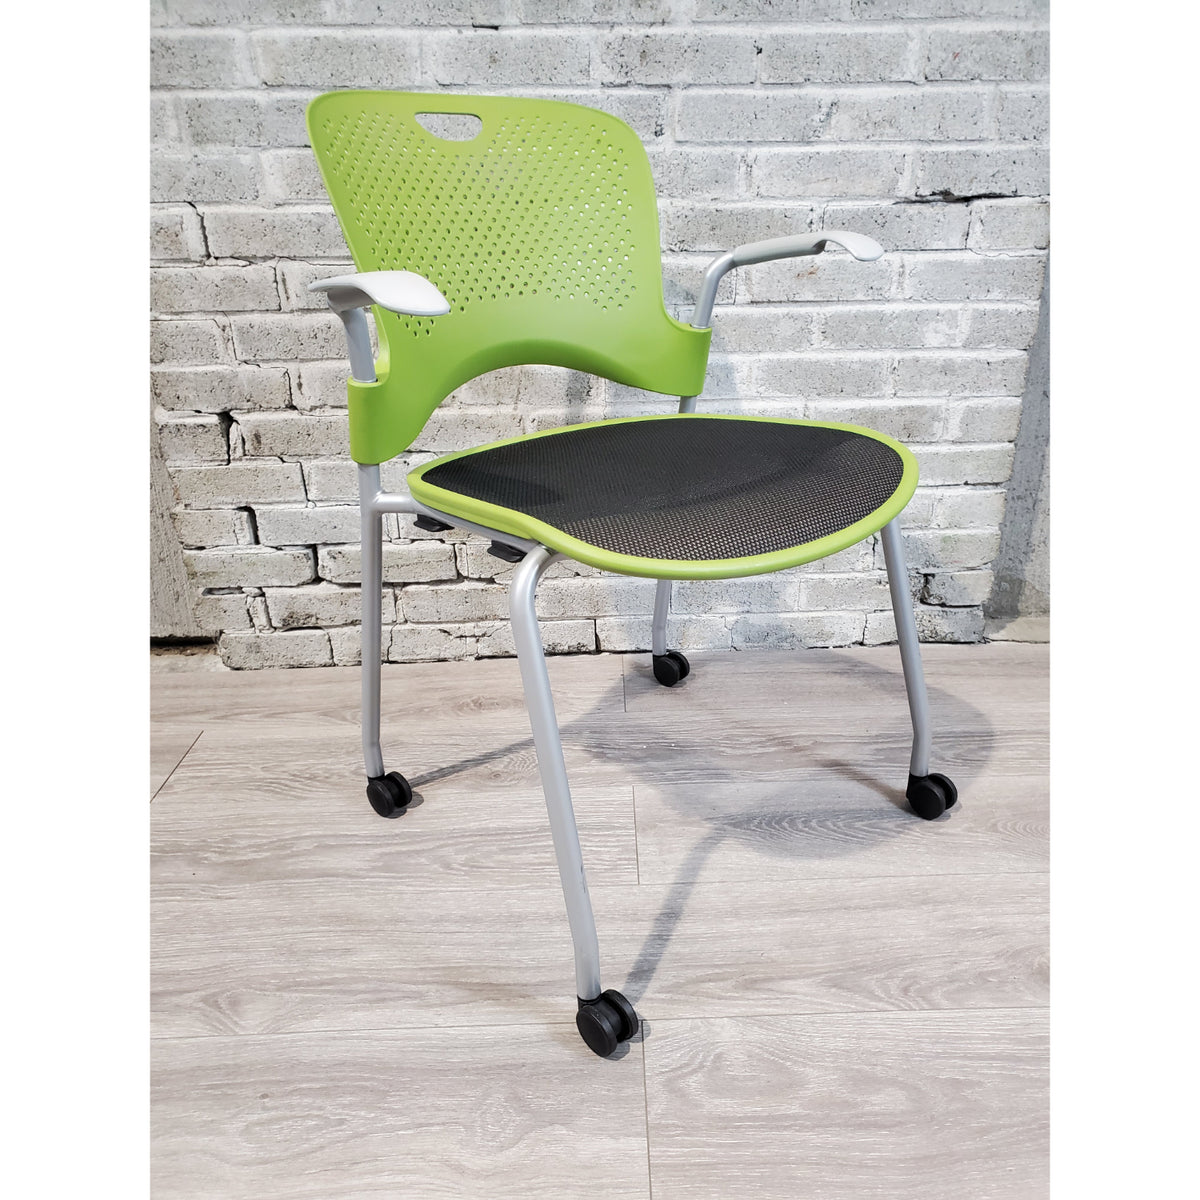 Pre-Owned - Used Herman Miller Caper Side Chair with Casters - Green - Duckys Office Furniture